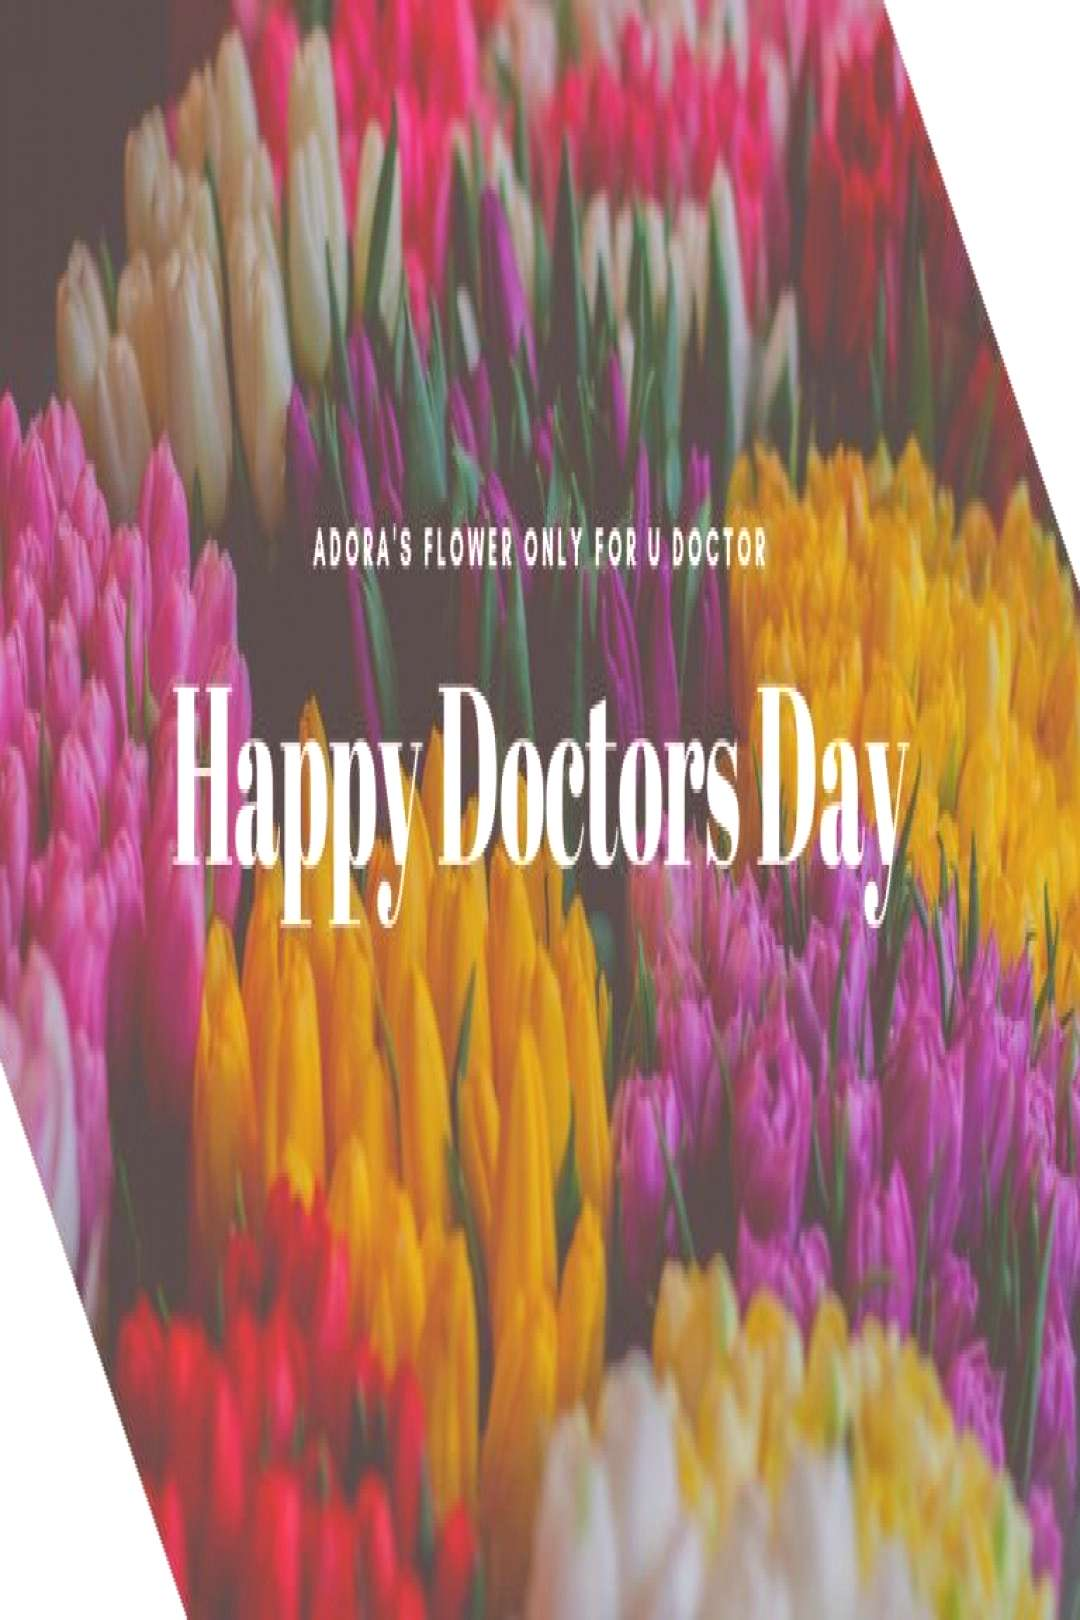 Happy Doctors Day Wishes + Happy Doctors Day happy doctors day wishes * happy doctors day + happy d